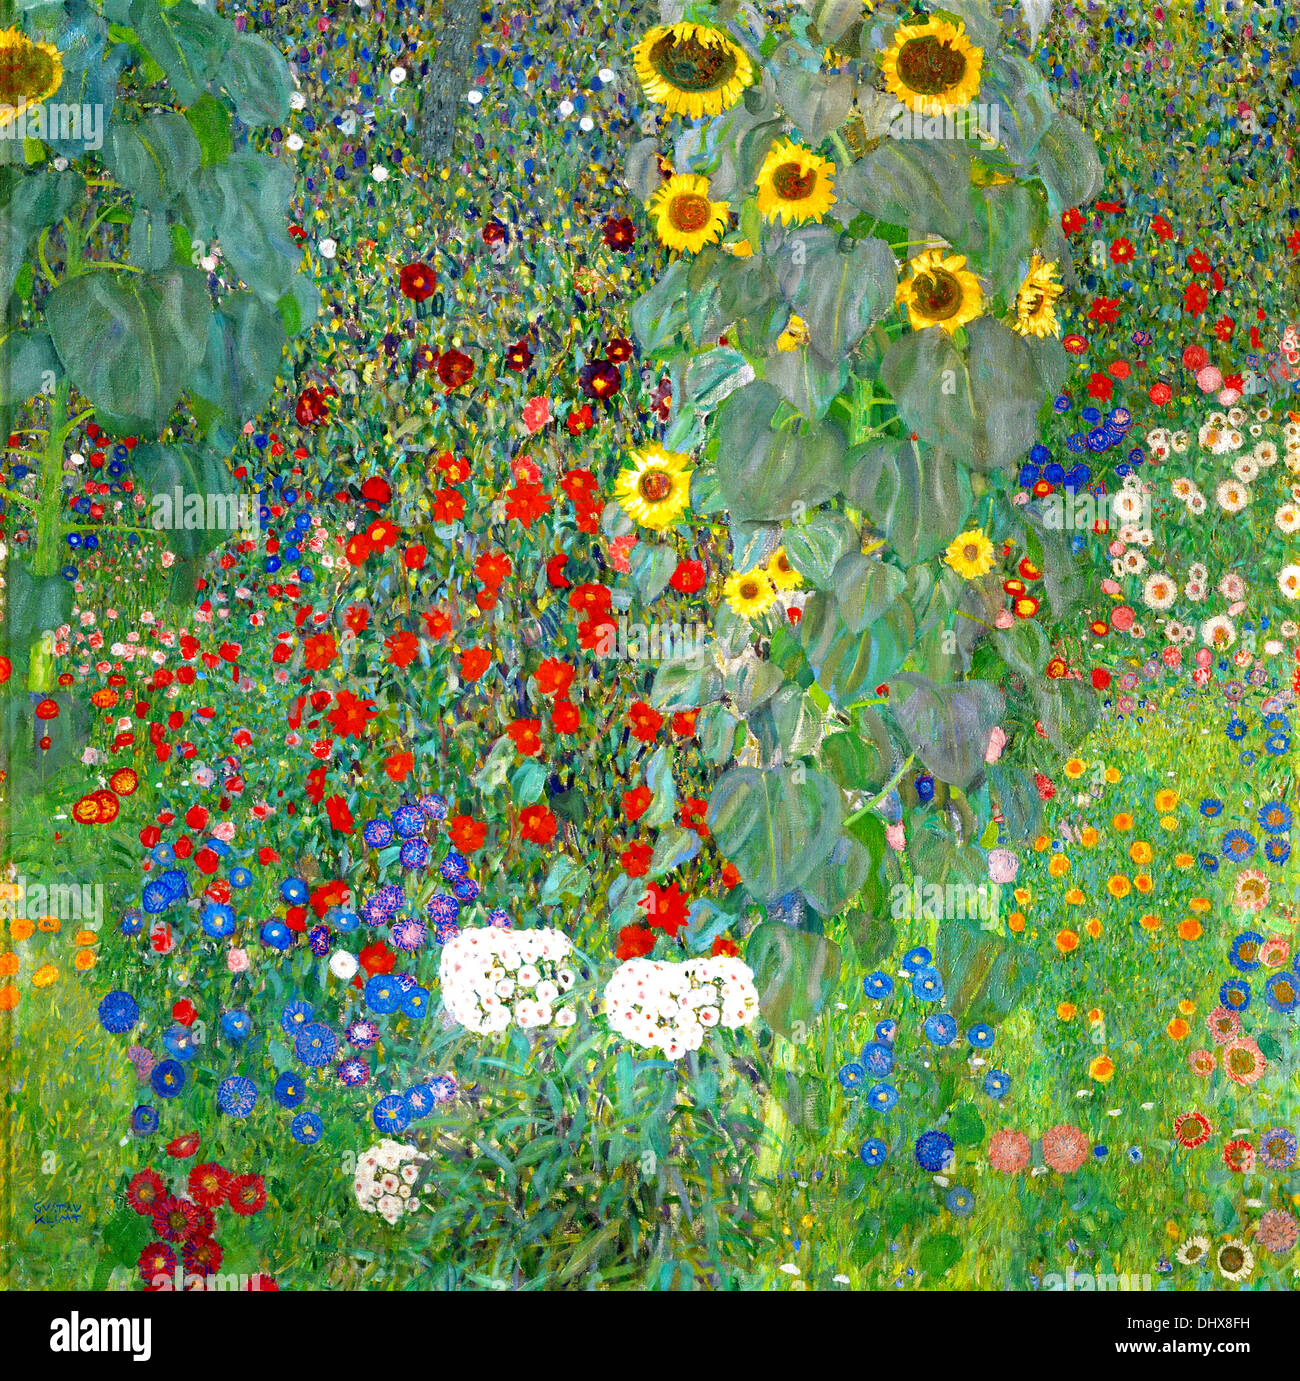 Charmant Farm Garden With Sunflowers   By Gustav Klimt, 1912   Stock Image